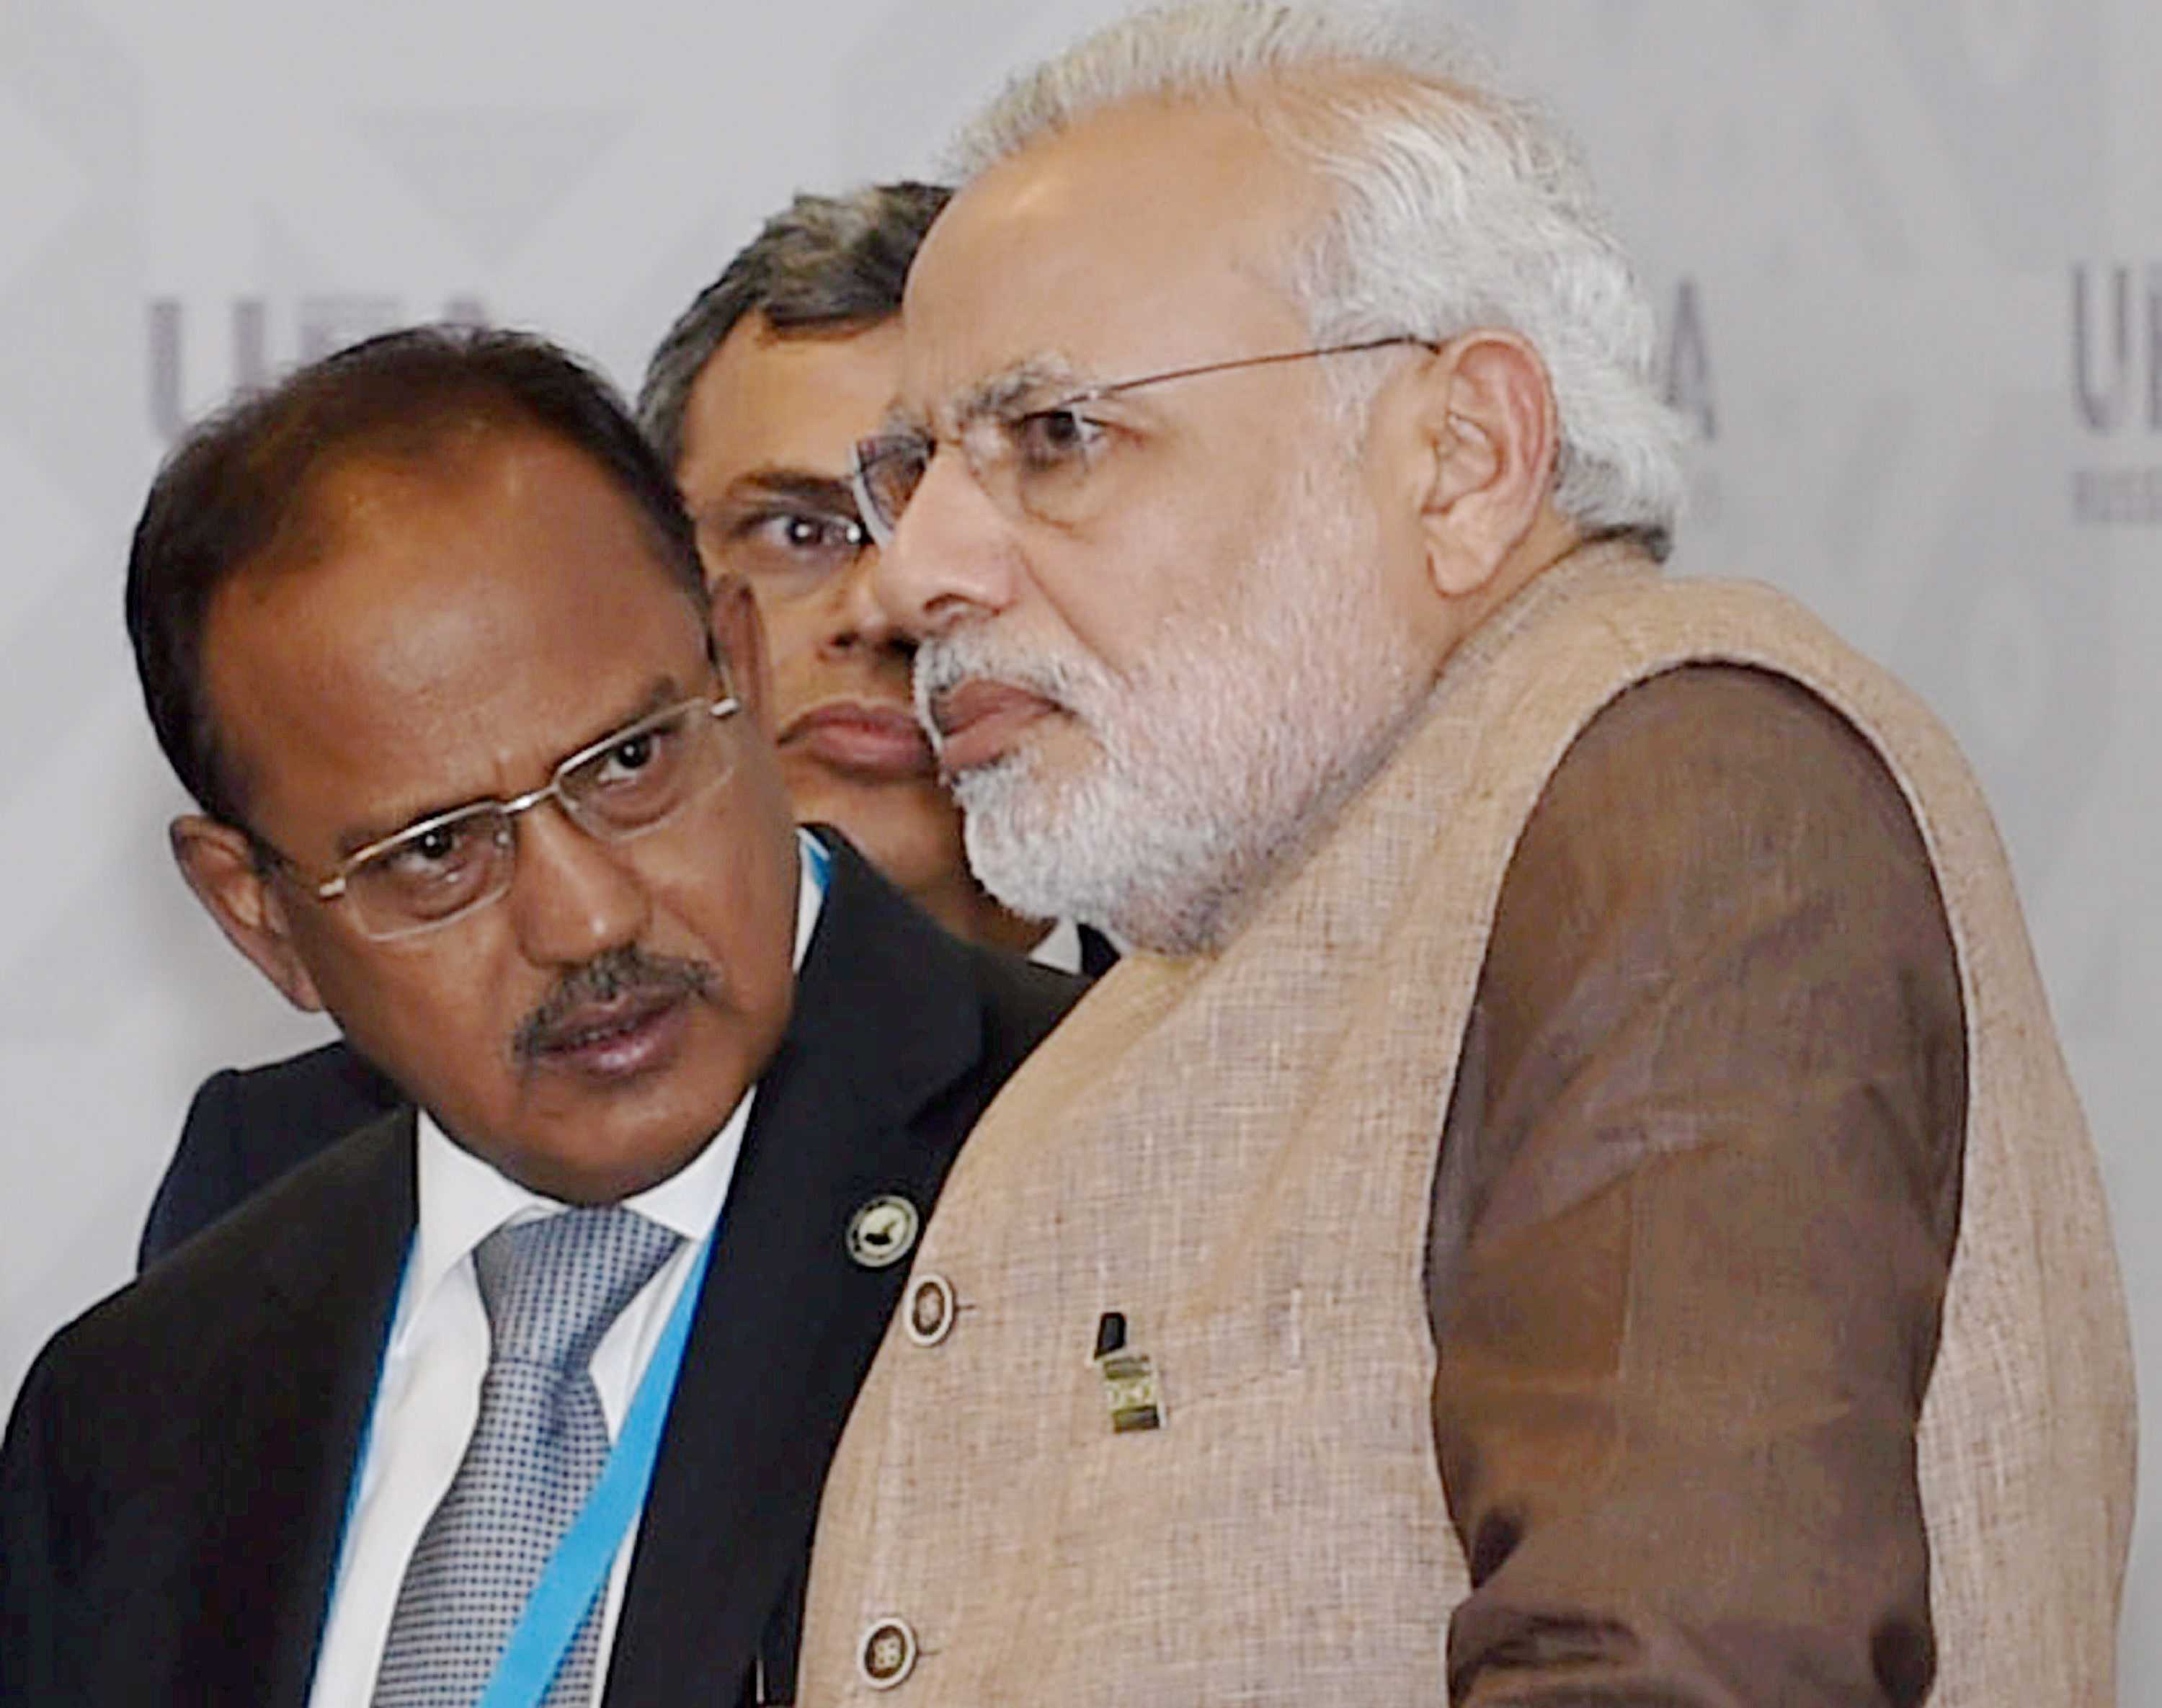 Prime Minister Narendra Modi with NSA Ajit Doval before a meeting in Ufa last Friday. PTI Photo by Manvender Vashist